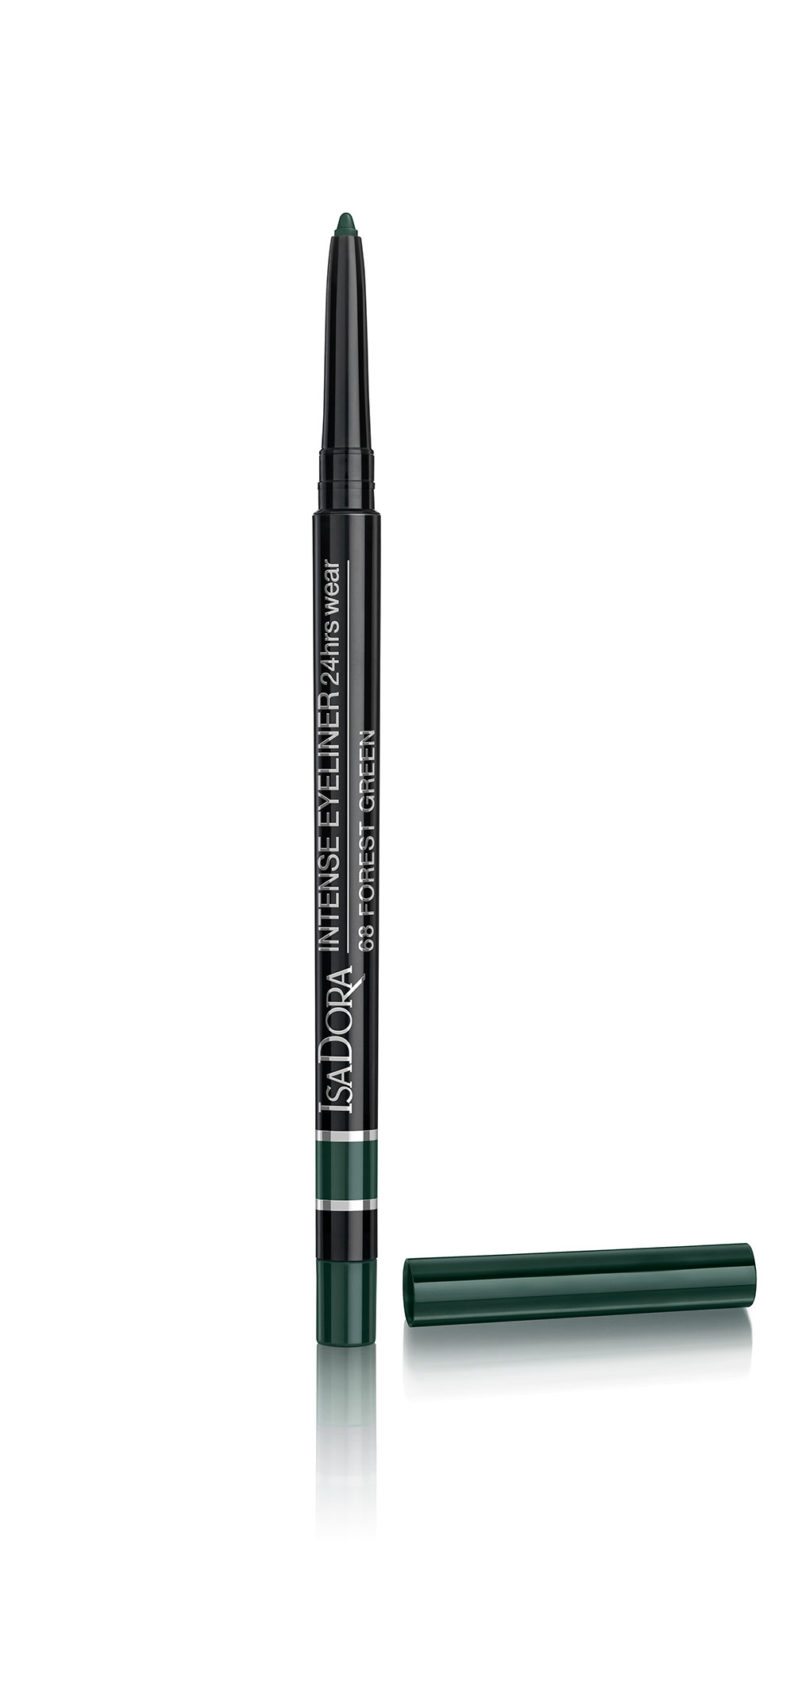 IsaDora Intense Eyeliner 24 hrs wear 68 Forest Green